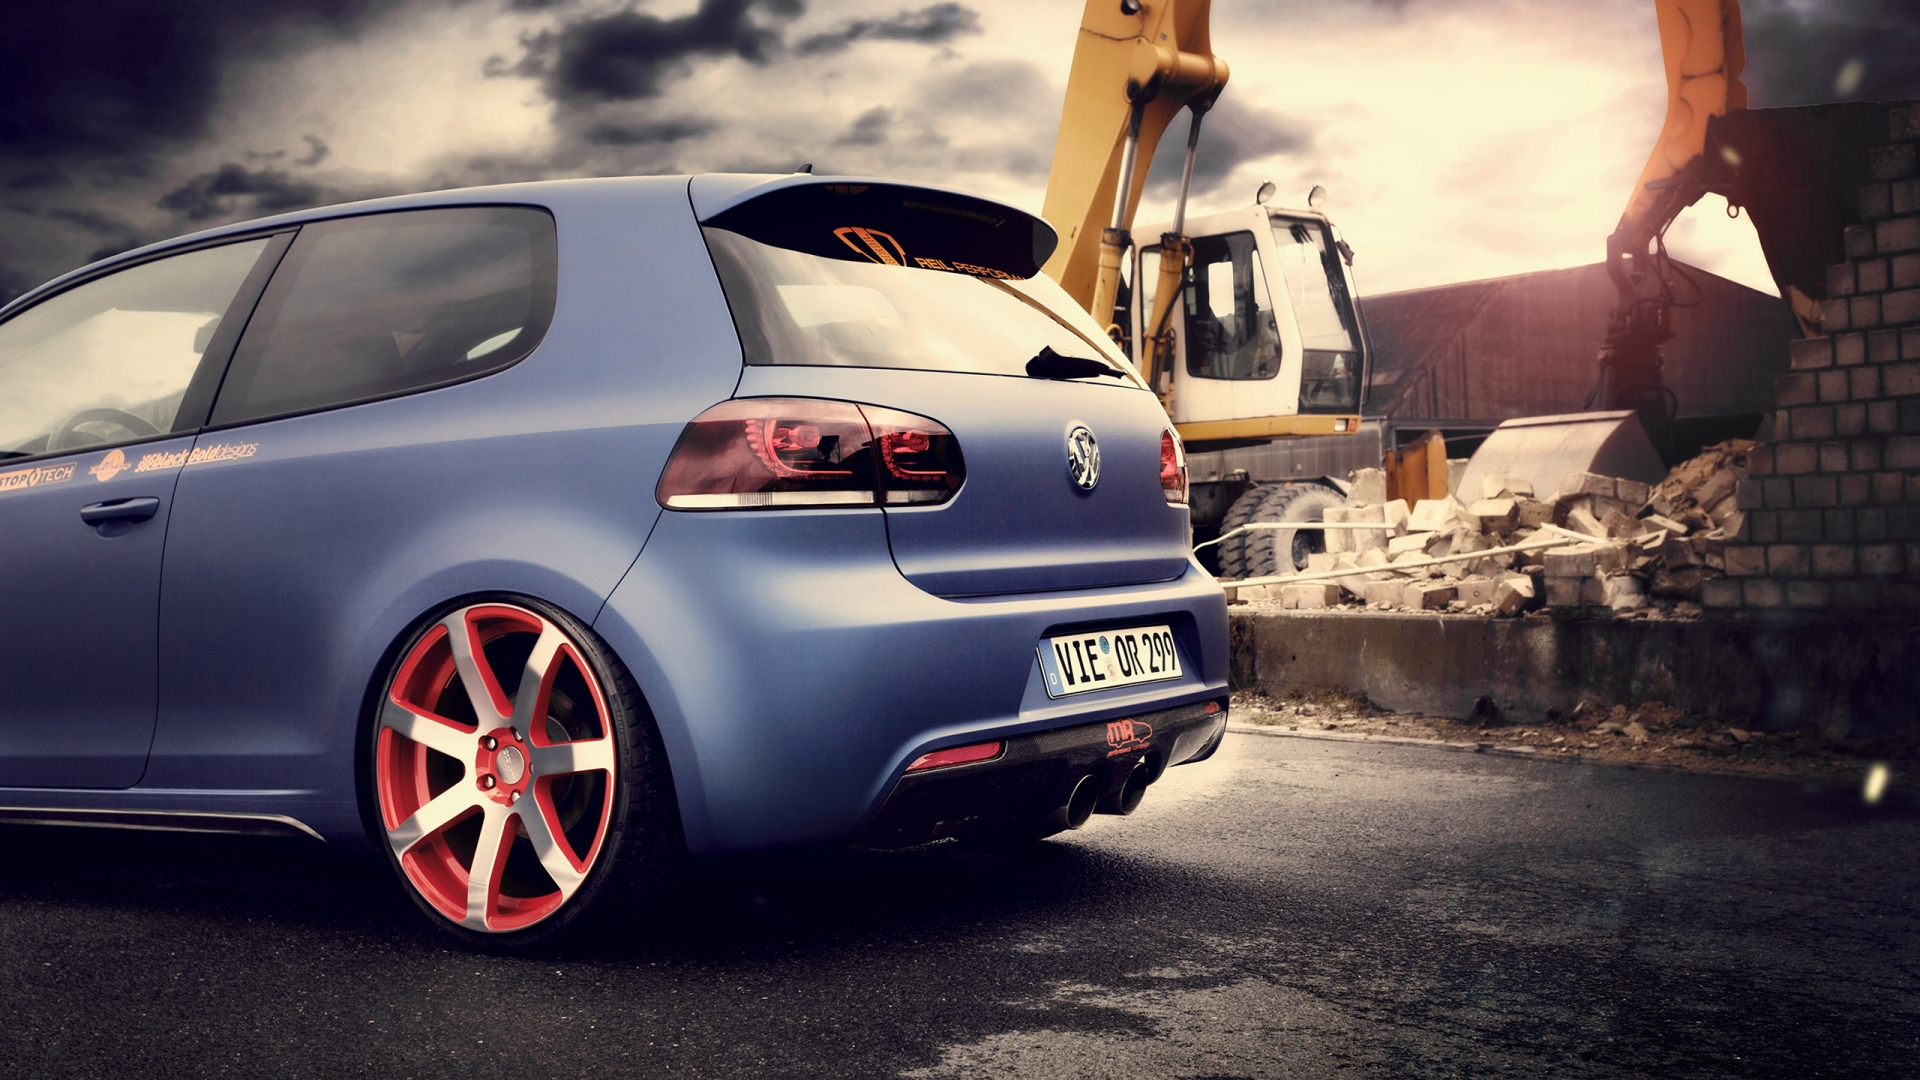 Best Wallpaper Gallery With Pc Wallpaper Volkswagen: Volkswagen Golf Wallpapers High Quality